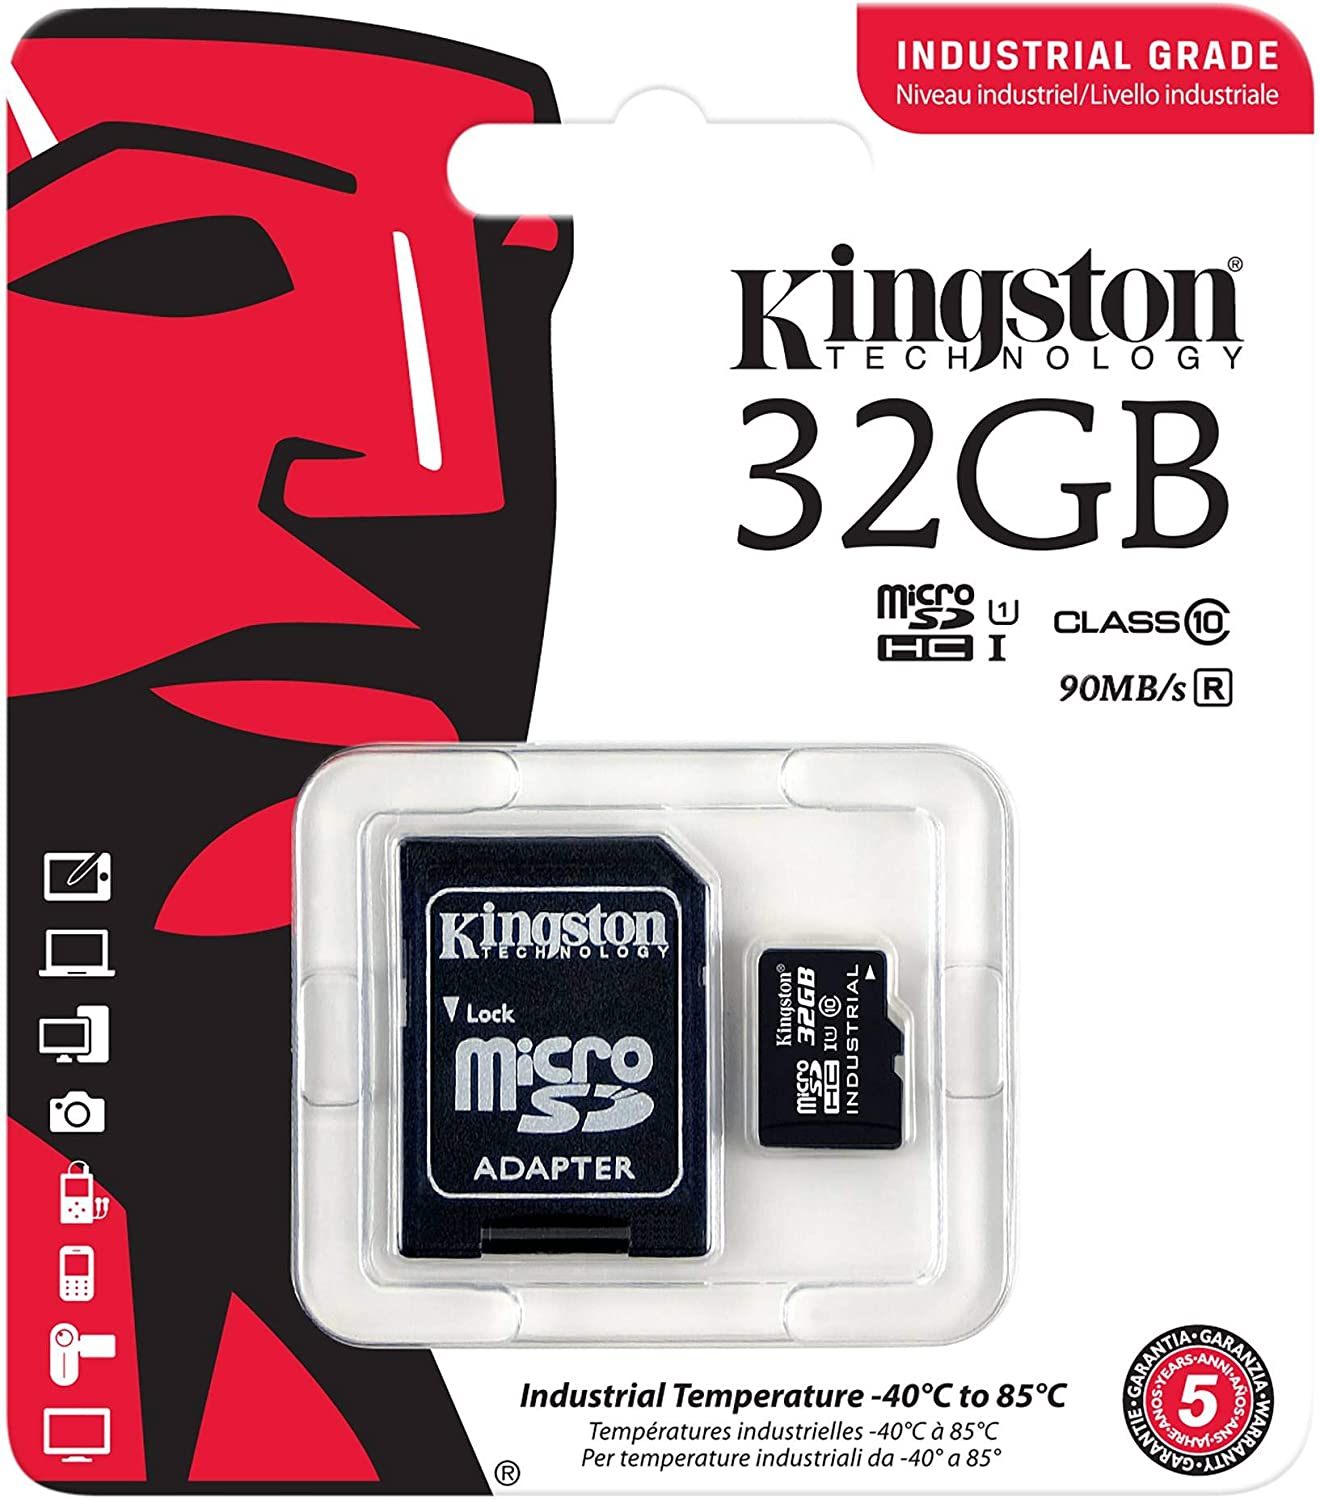 90MBs Works for Kingston Kingston Industrial Grade 32GB Huawei Ascend Y530 MicroSDHC Card Verified by SanFlash.